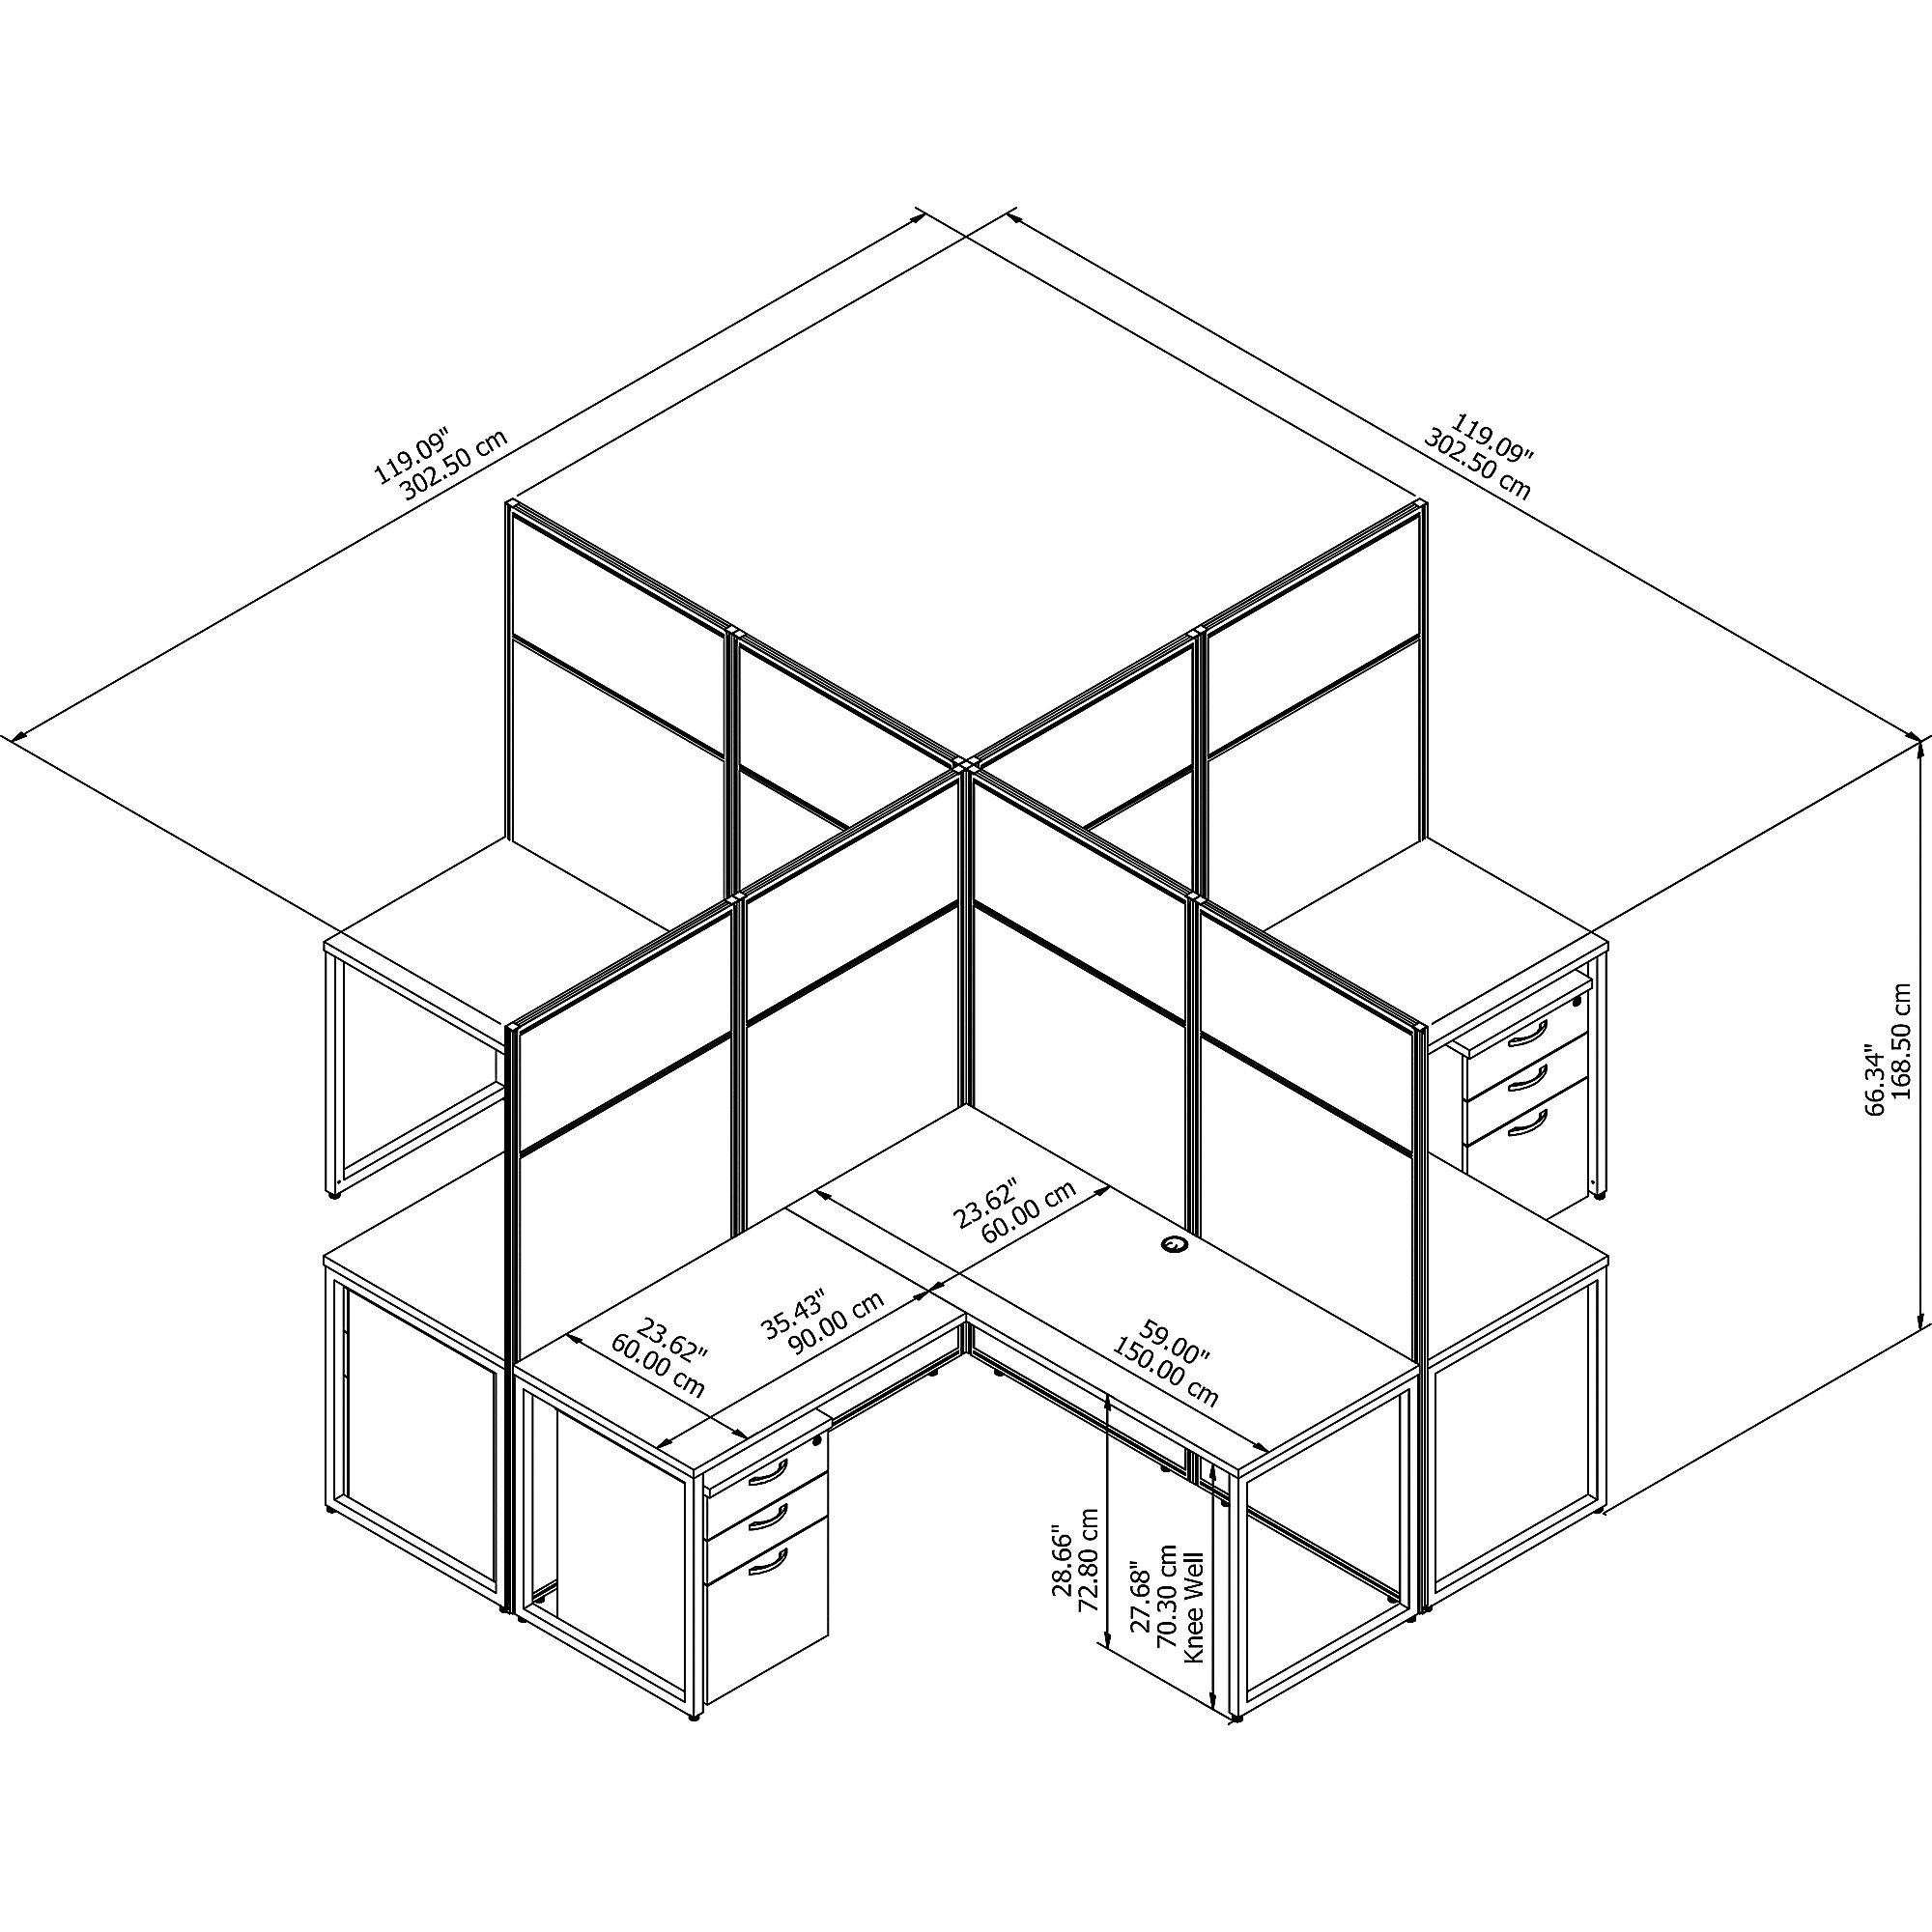 easy office 4 person cluster desk line drawing and dimensions